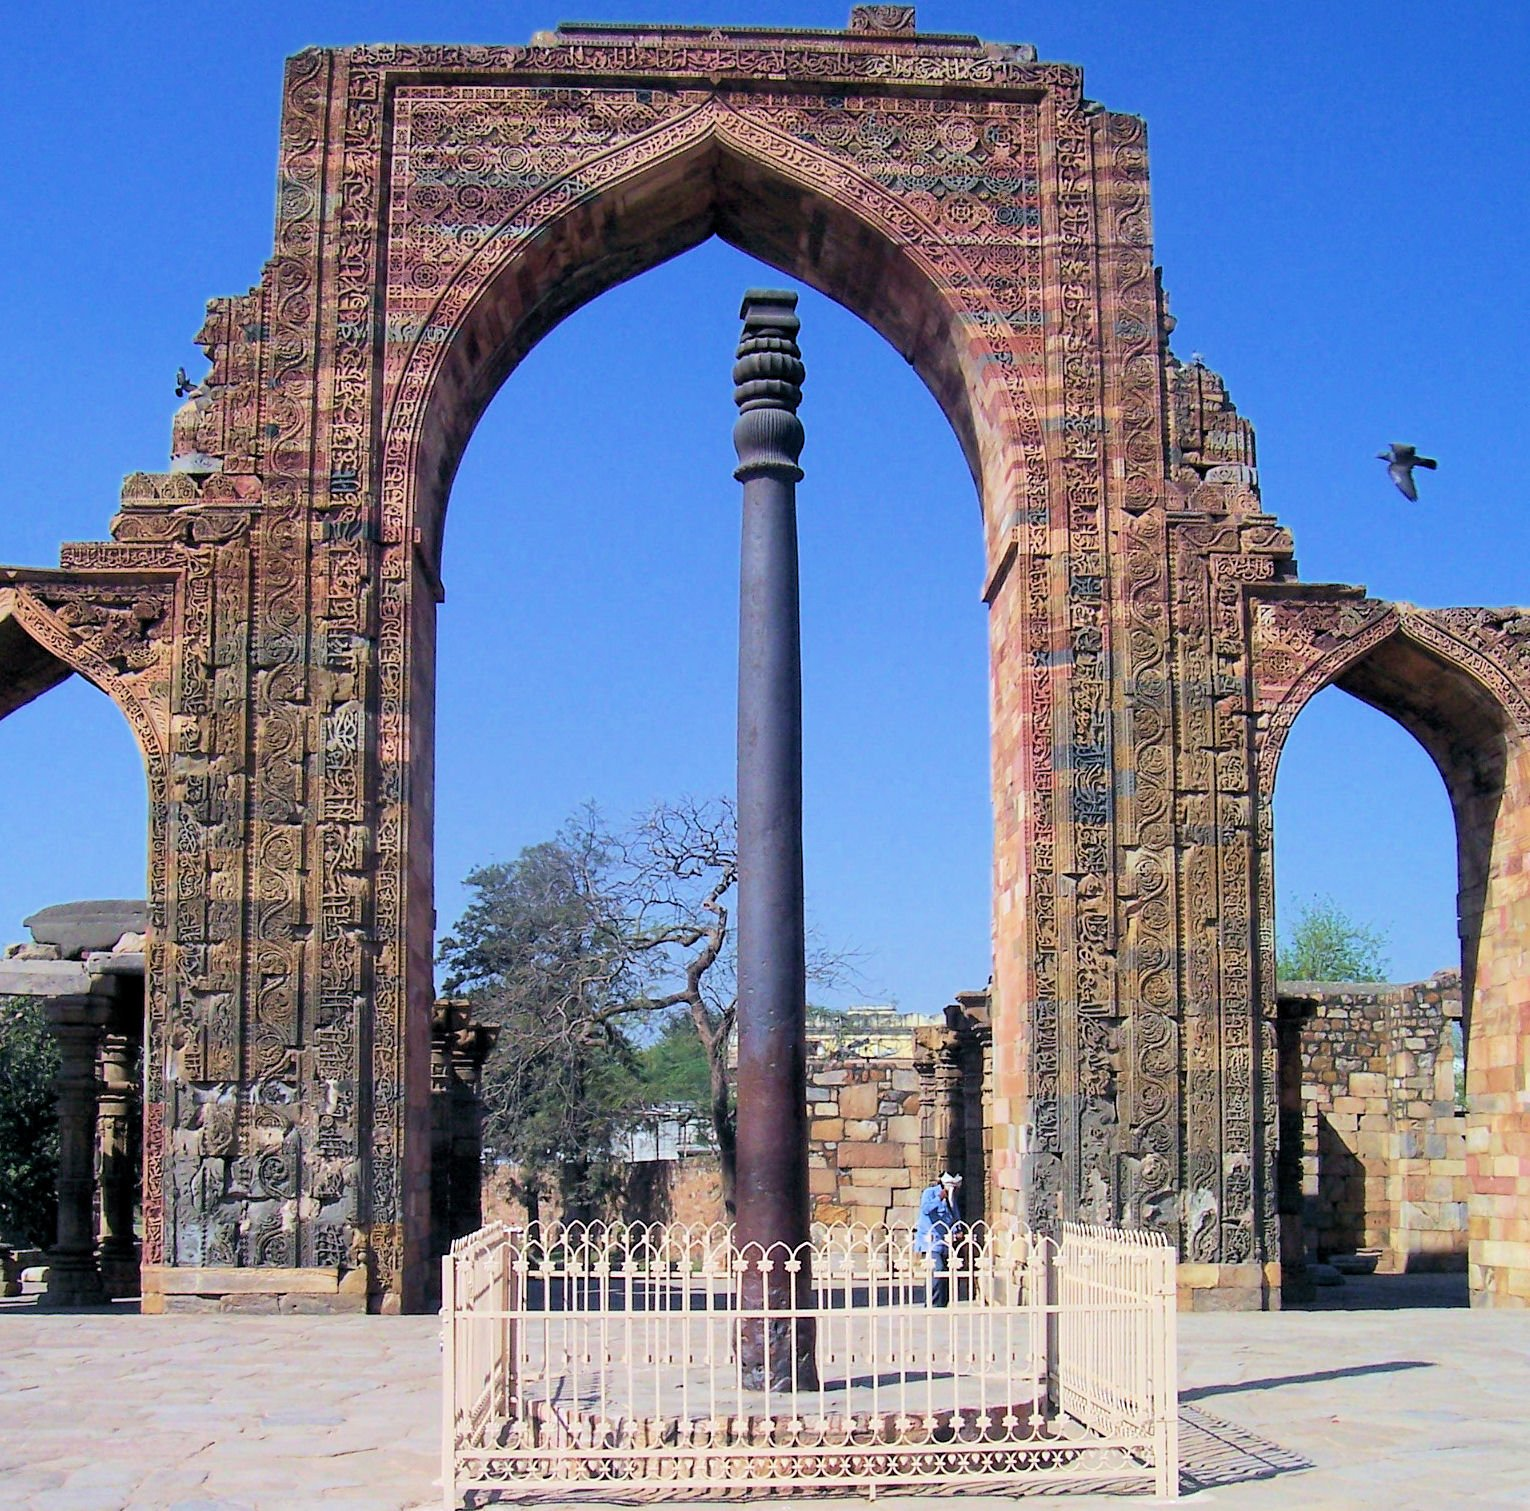 Chandra Gupta's Iron Pillar of Delhi from 415AD with the Inscription about the Vahla/Wahlah Dynasty